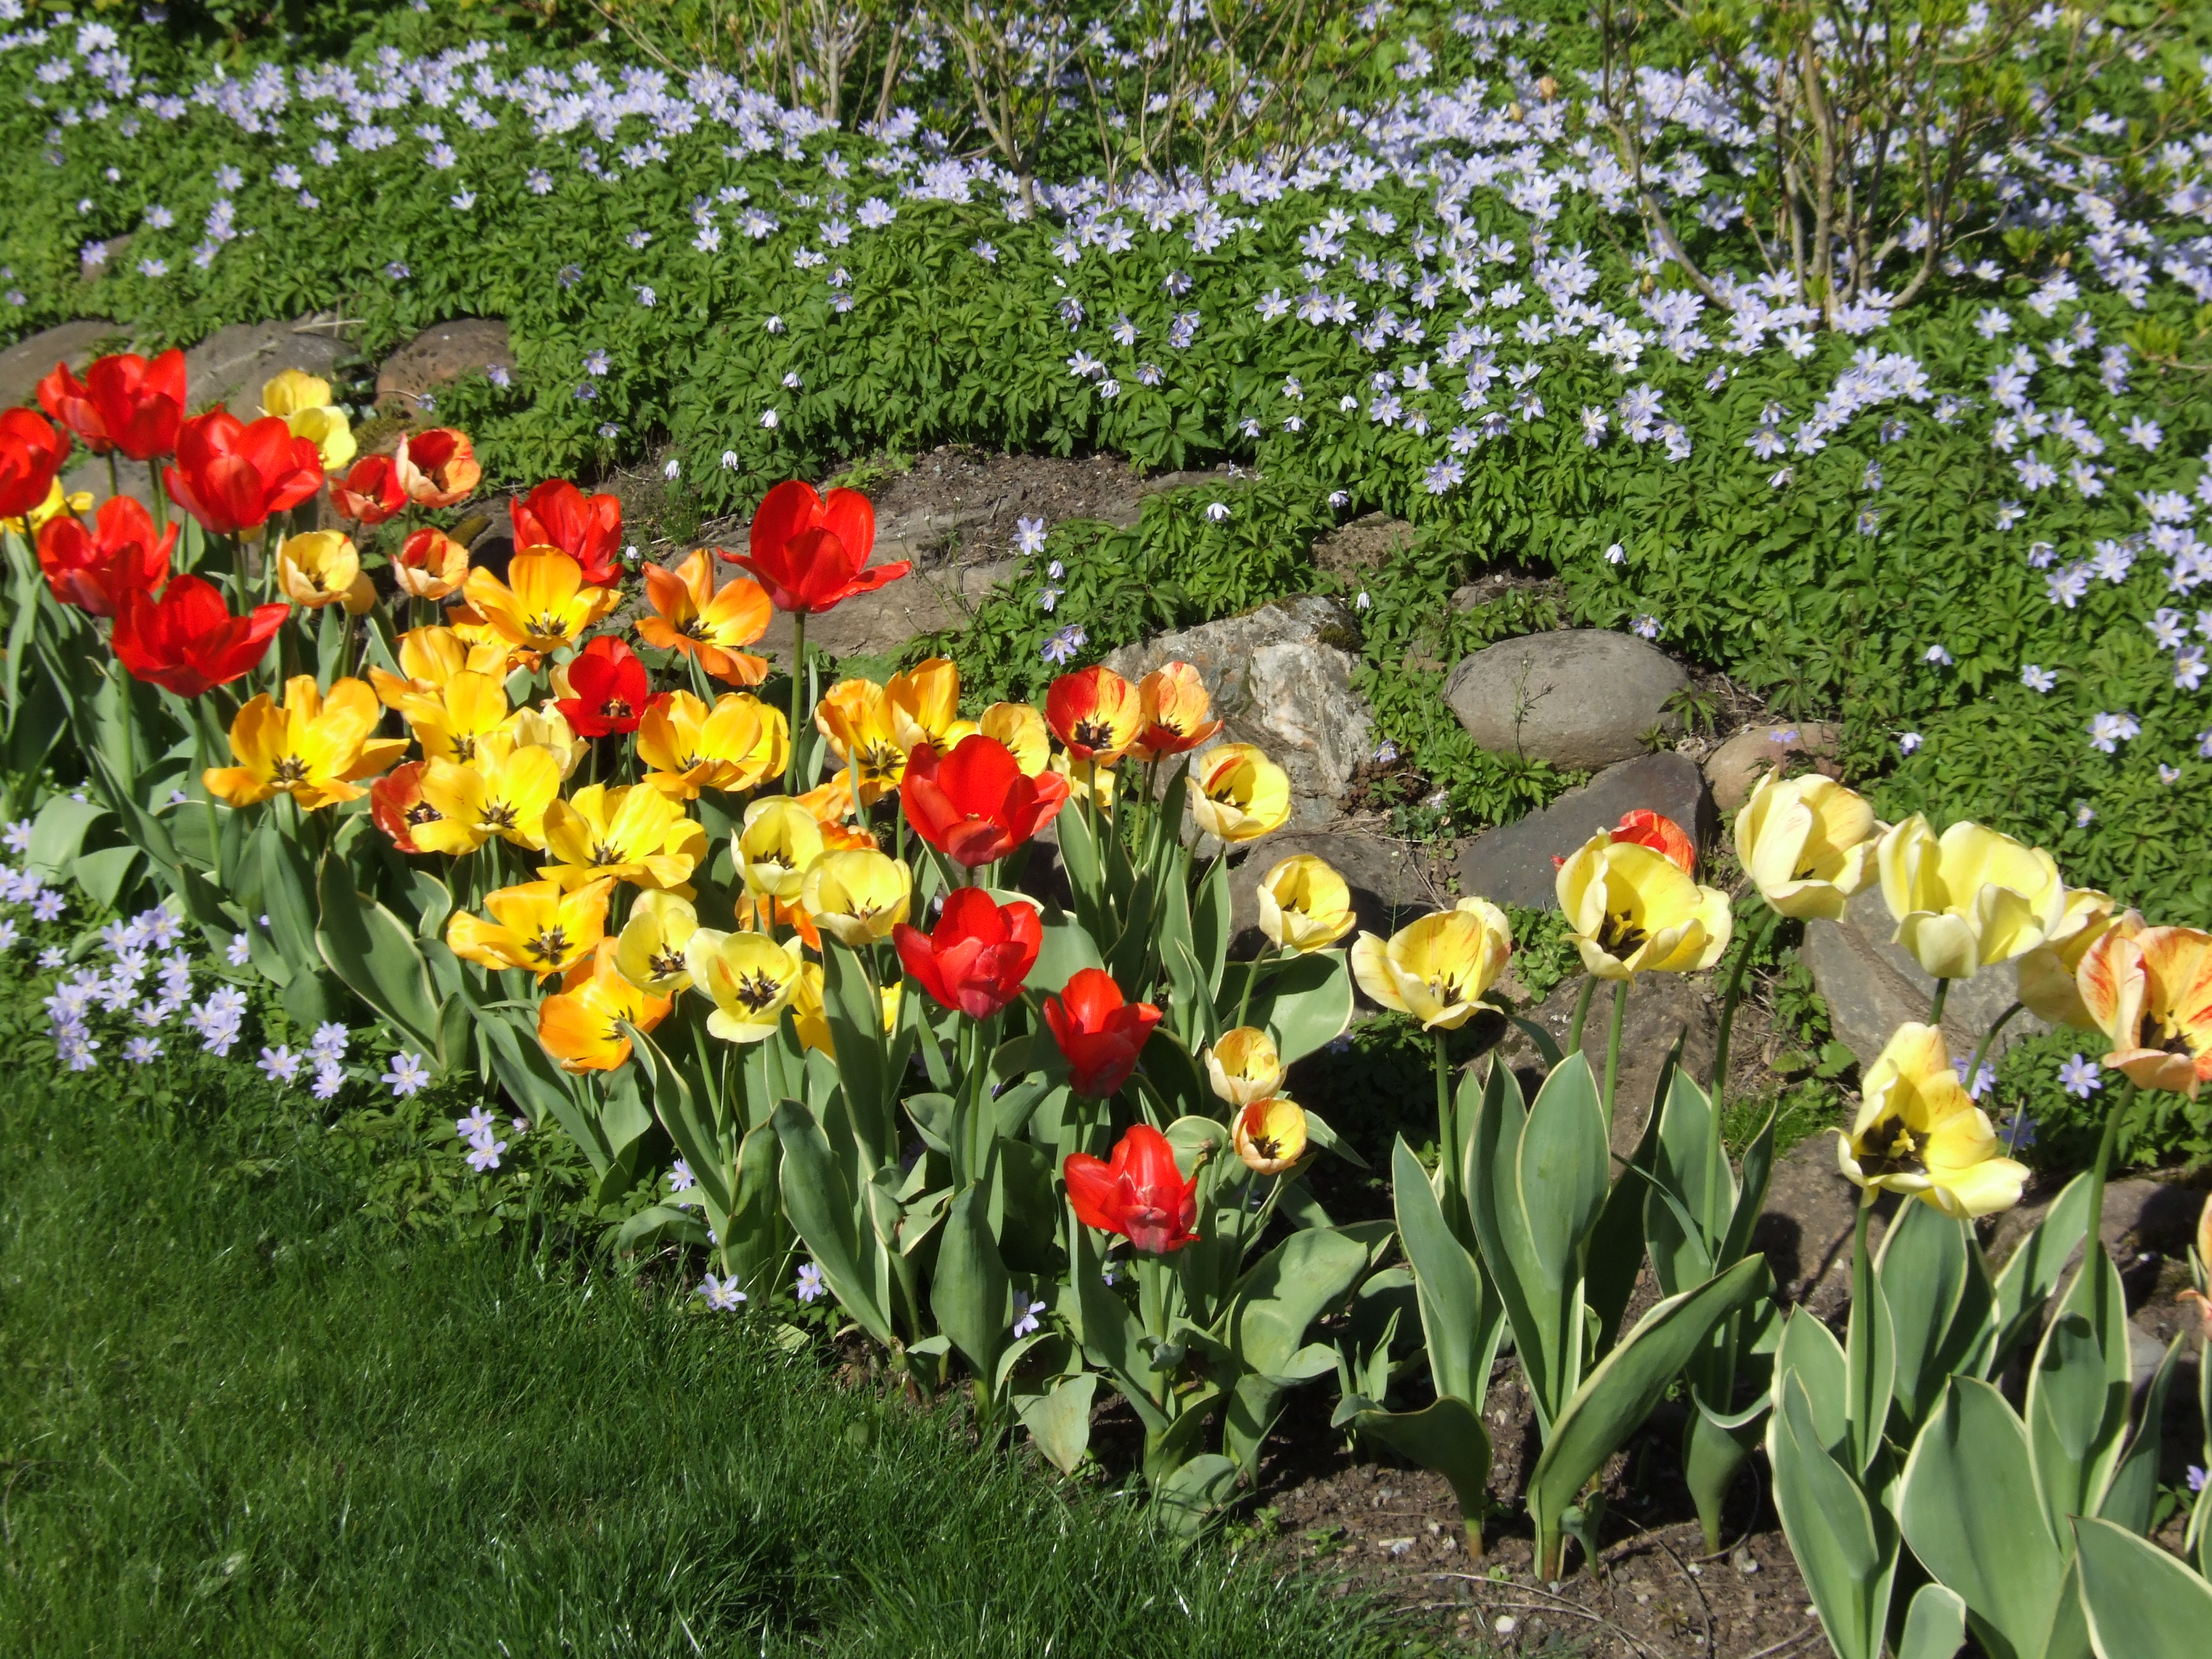 Tulips - Daydream, Silverstream and others